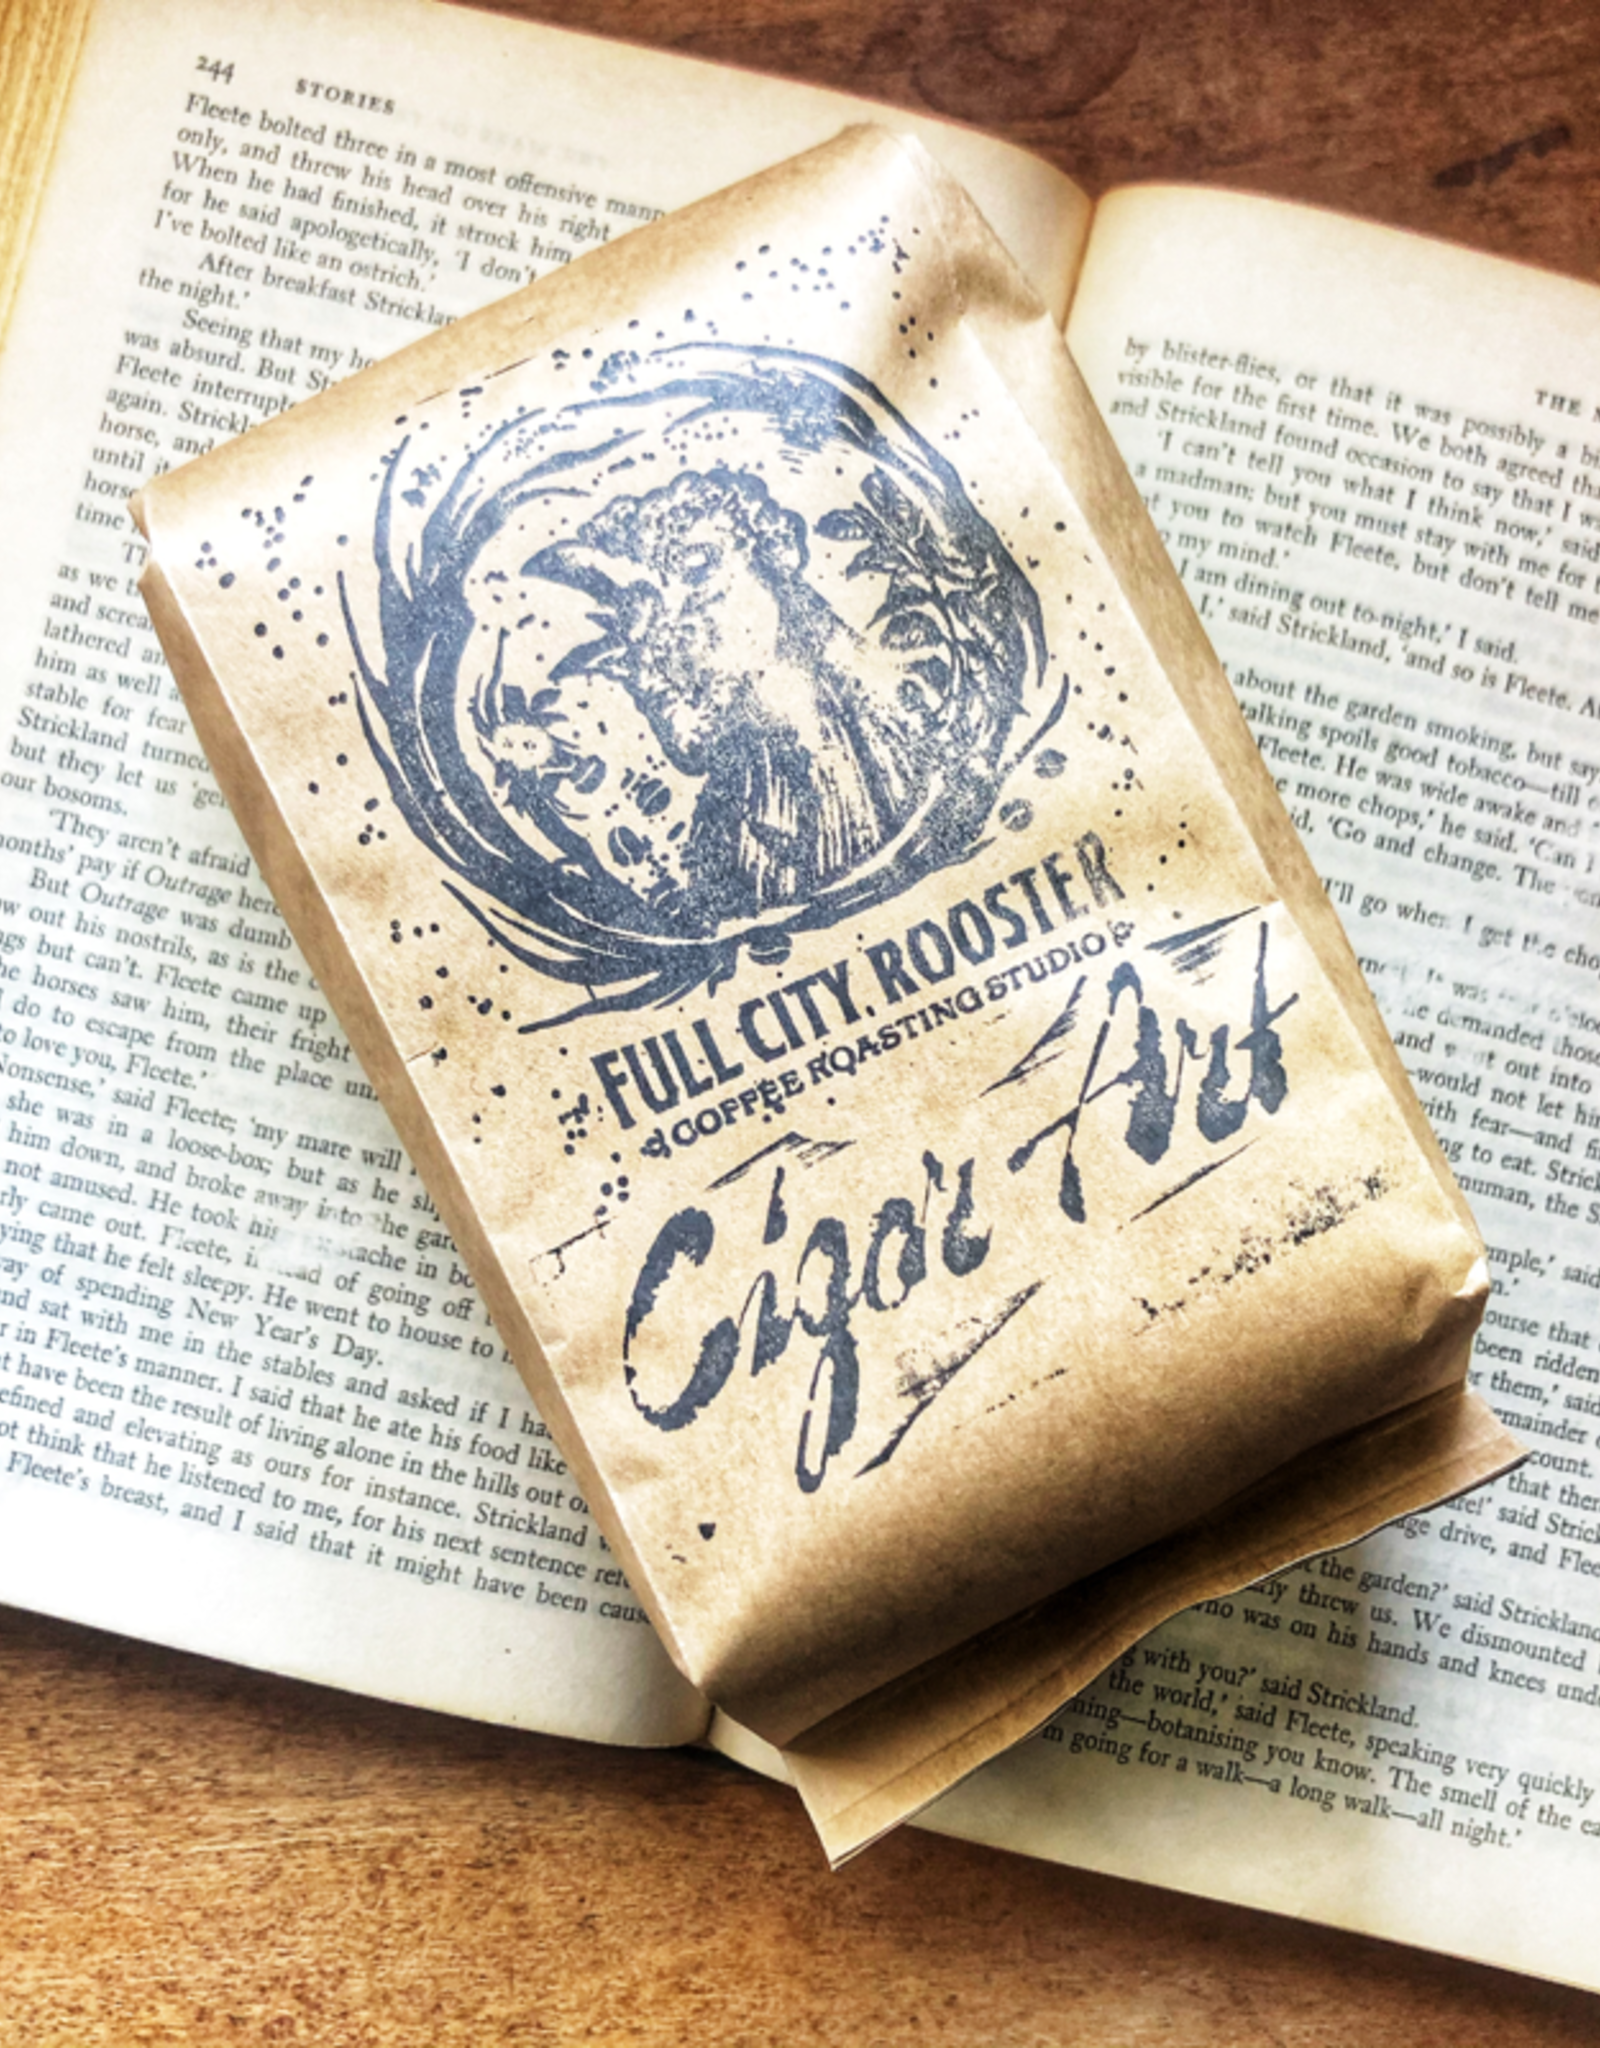 Full City Rooster Full City Rooster Coffee: Cigar Art Exclusive 12oz Whole Bean